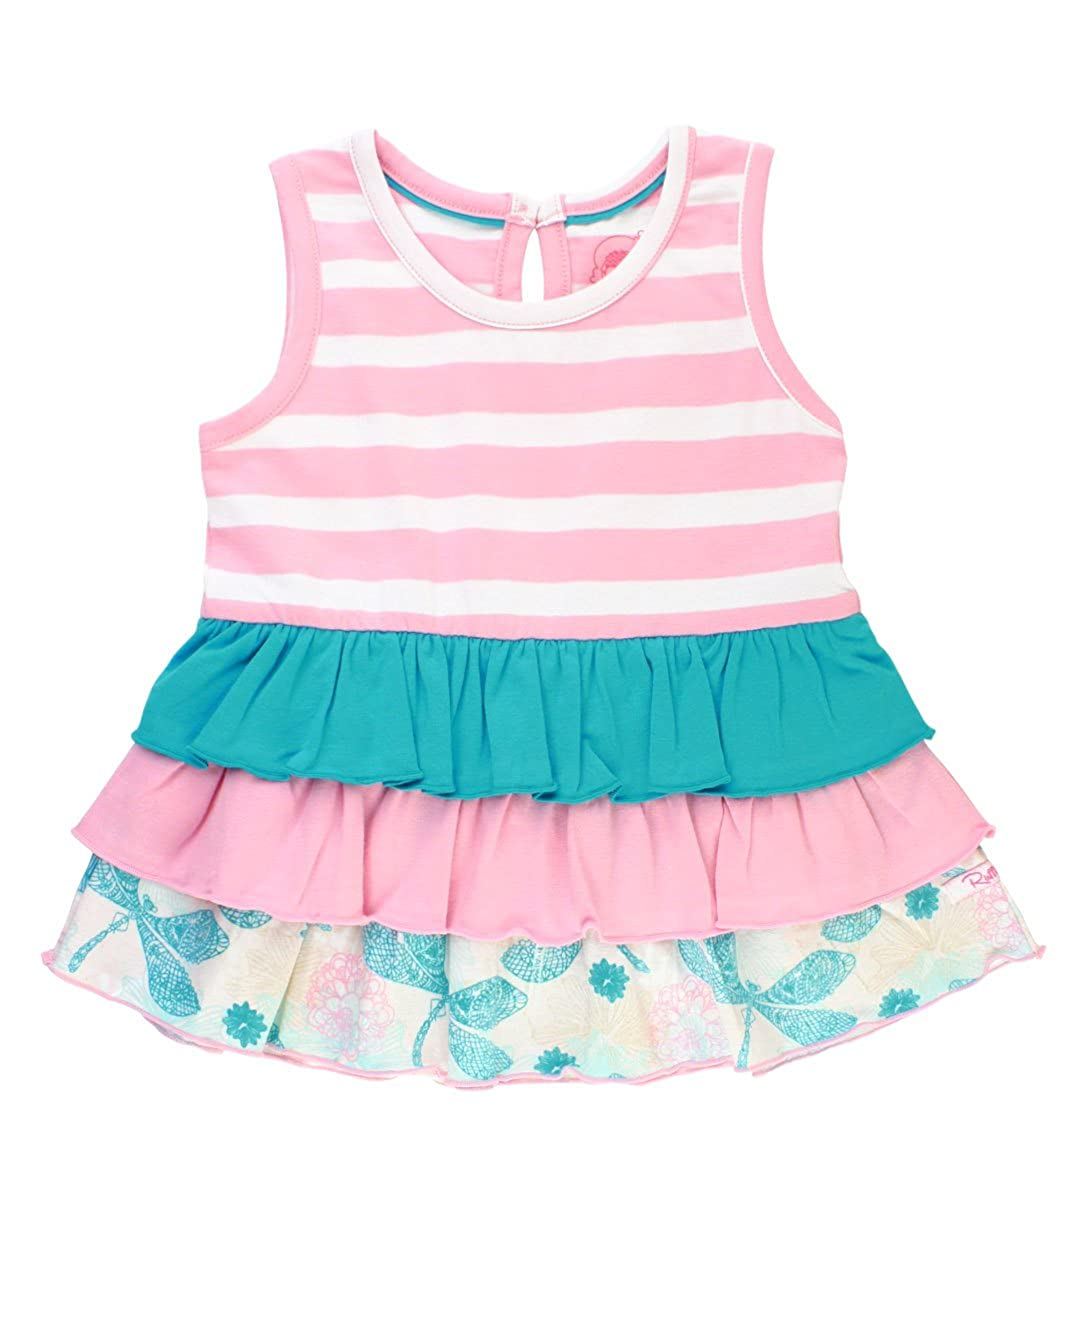 RuffleButts Baby/Toddler Girls Striped and Mix-Print Cotton Knit Flowy Tiered Tank TTKPWXX-DDKW-BABY